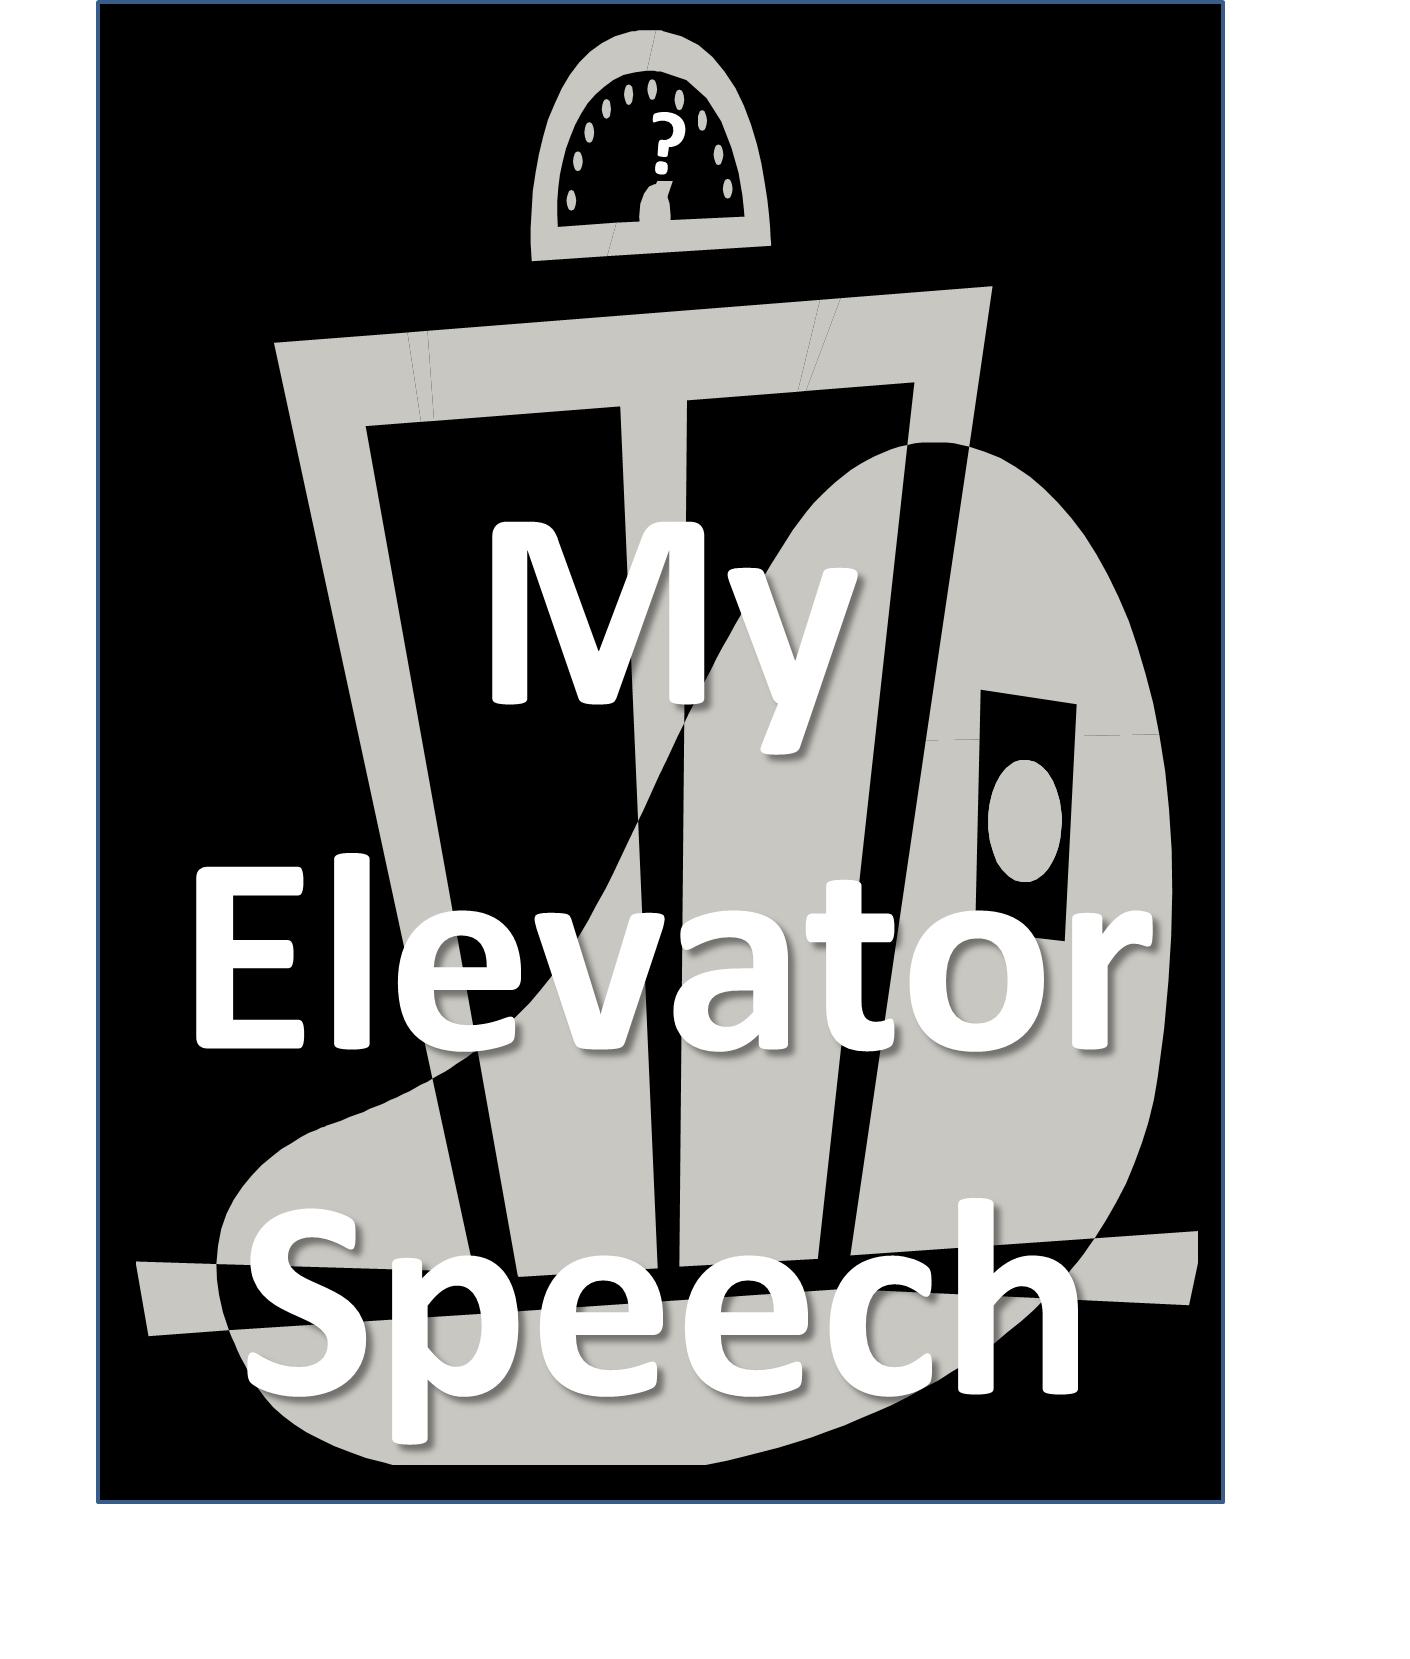 second introduction example related keywords second elevator speech examples please also review our guidelines pictures